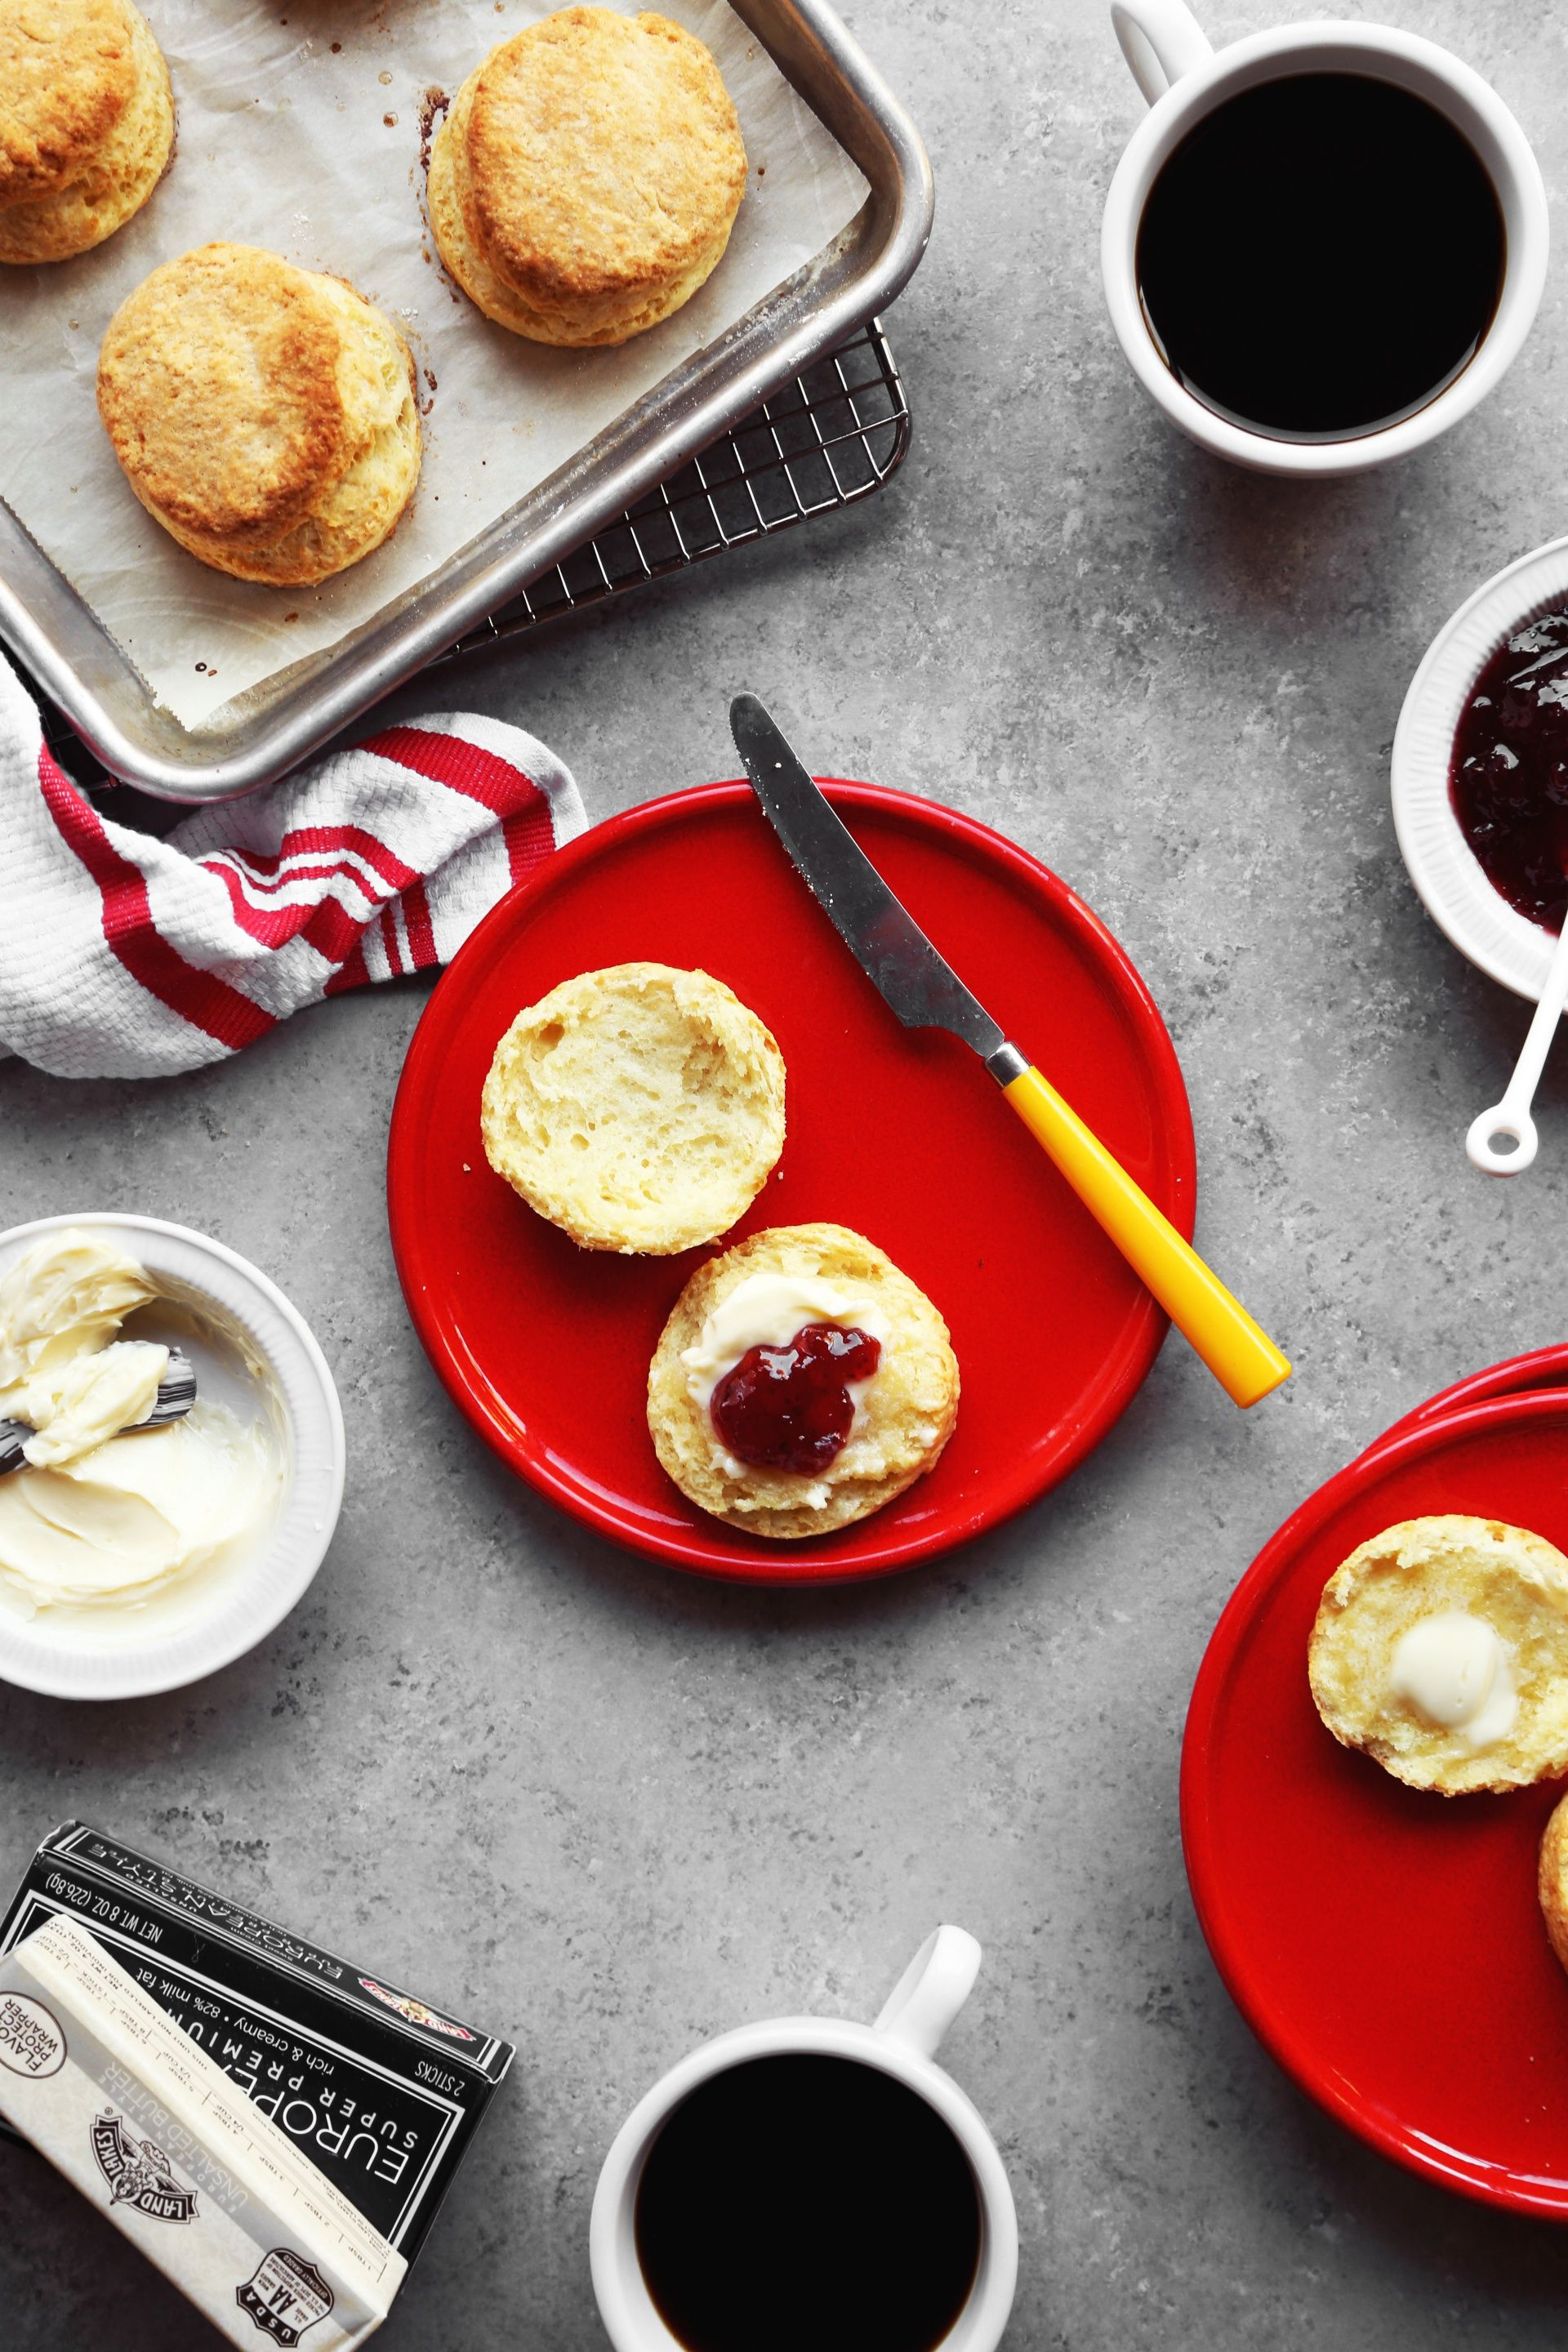 Buttery Layered Buttermilk Biscuits Joy The Baker Recipe Biscuit Recipe Joy The Baker Food